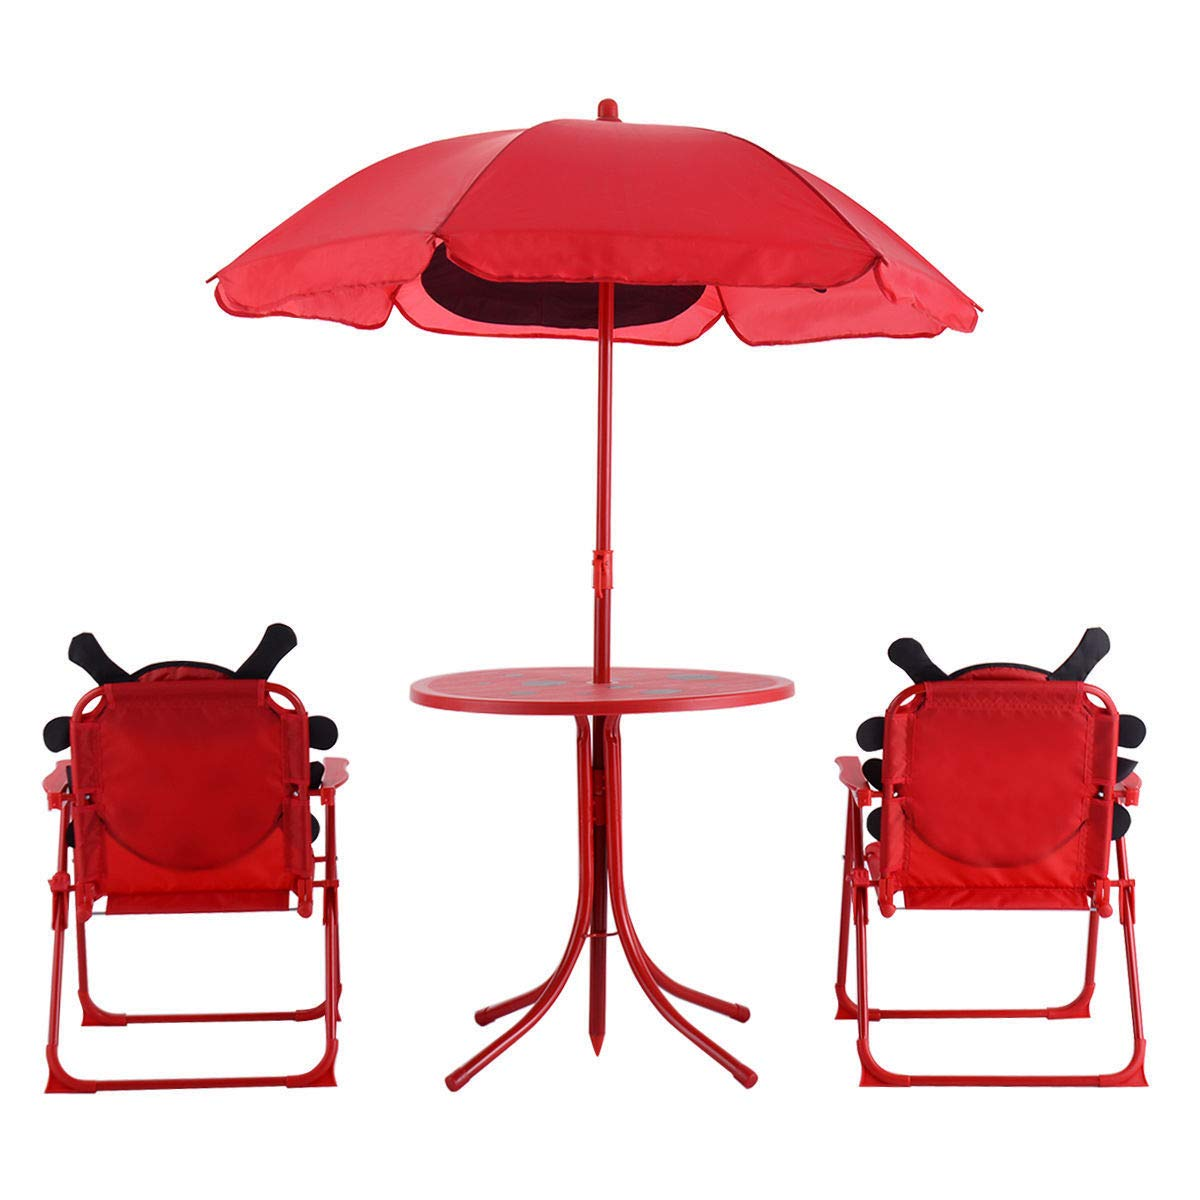 Set of 3 Red Beetle Ladybugs Pattern Kid Chair+Table+Umbrella Patio Garden Backyard Front yard Children Furniture Utility Kid room Foldable Easy Storage Light Weight Trip Party Event Picnic Home by Prettyshop4246 (Image #8)